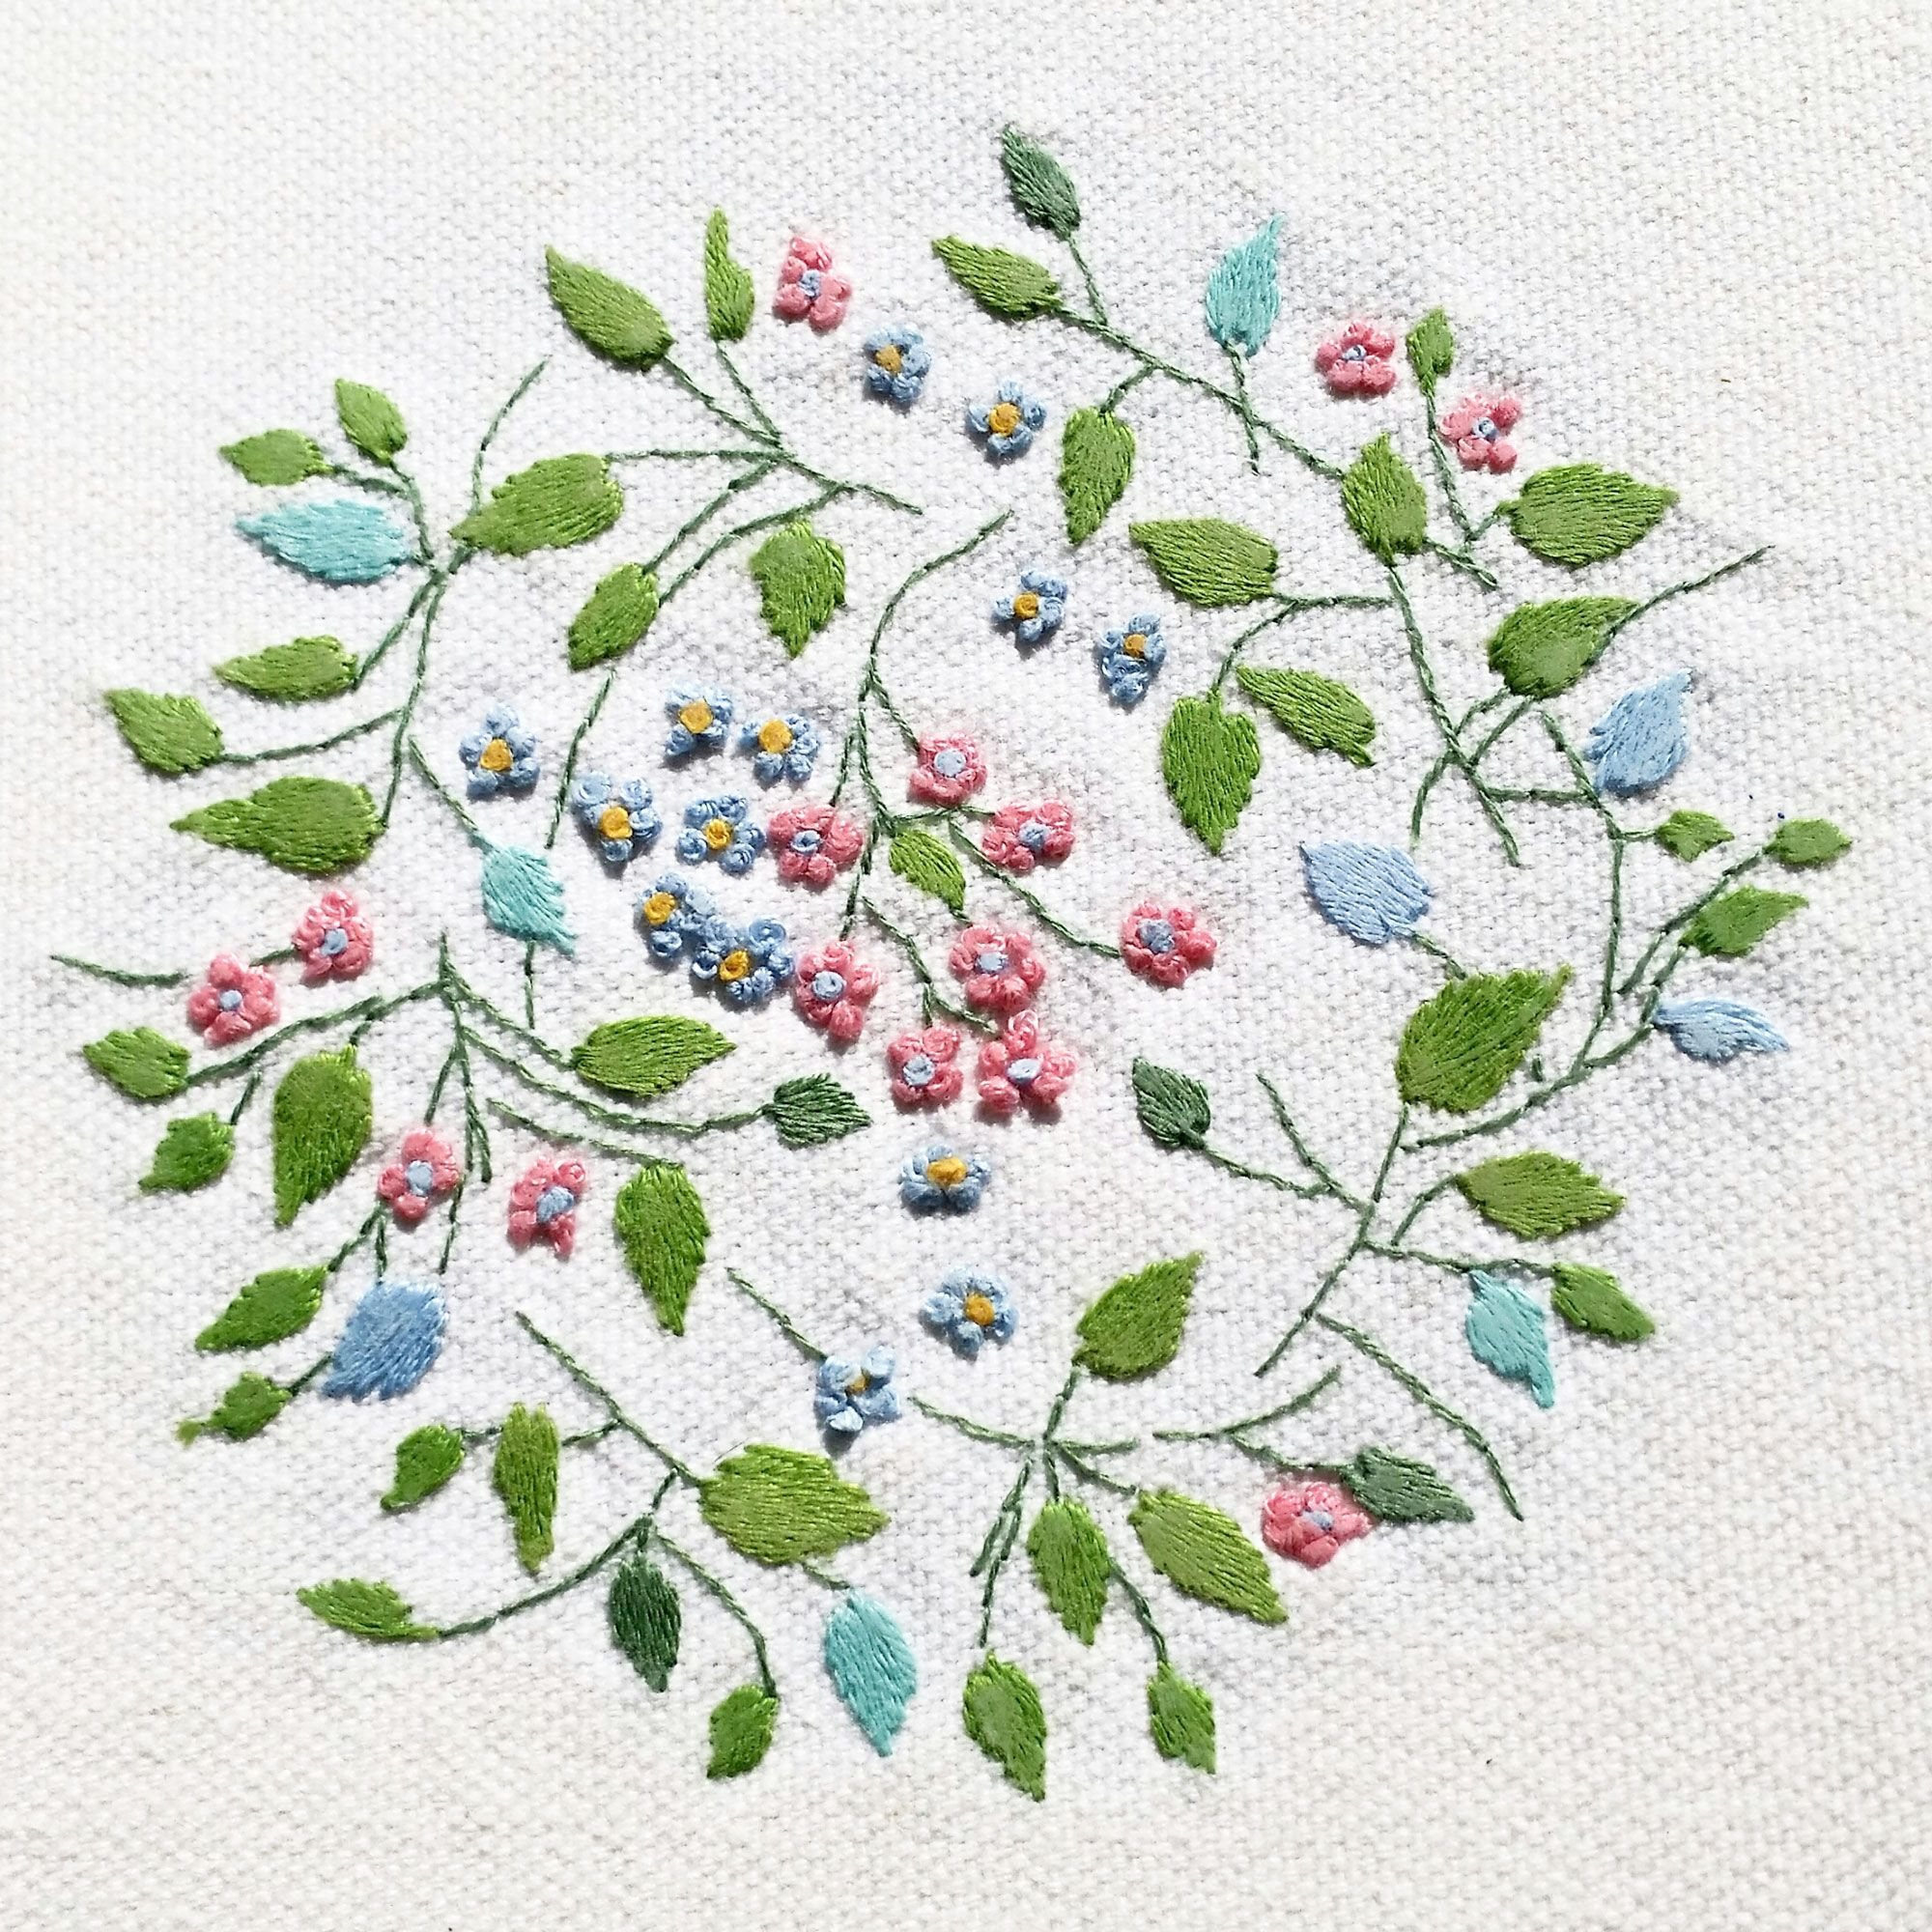 Embroidery vines and flowers hand